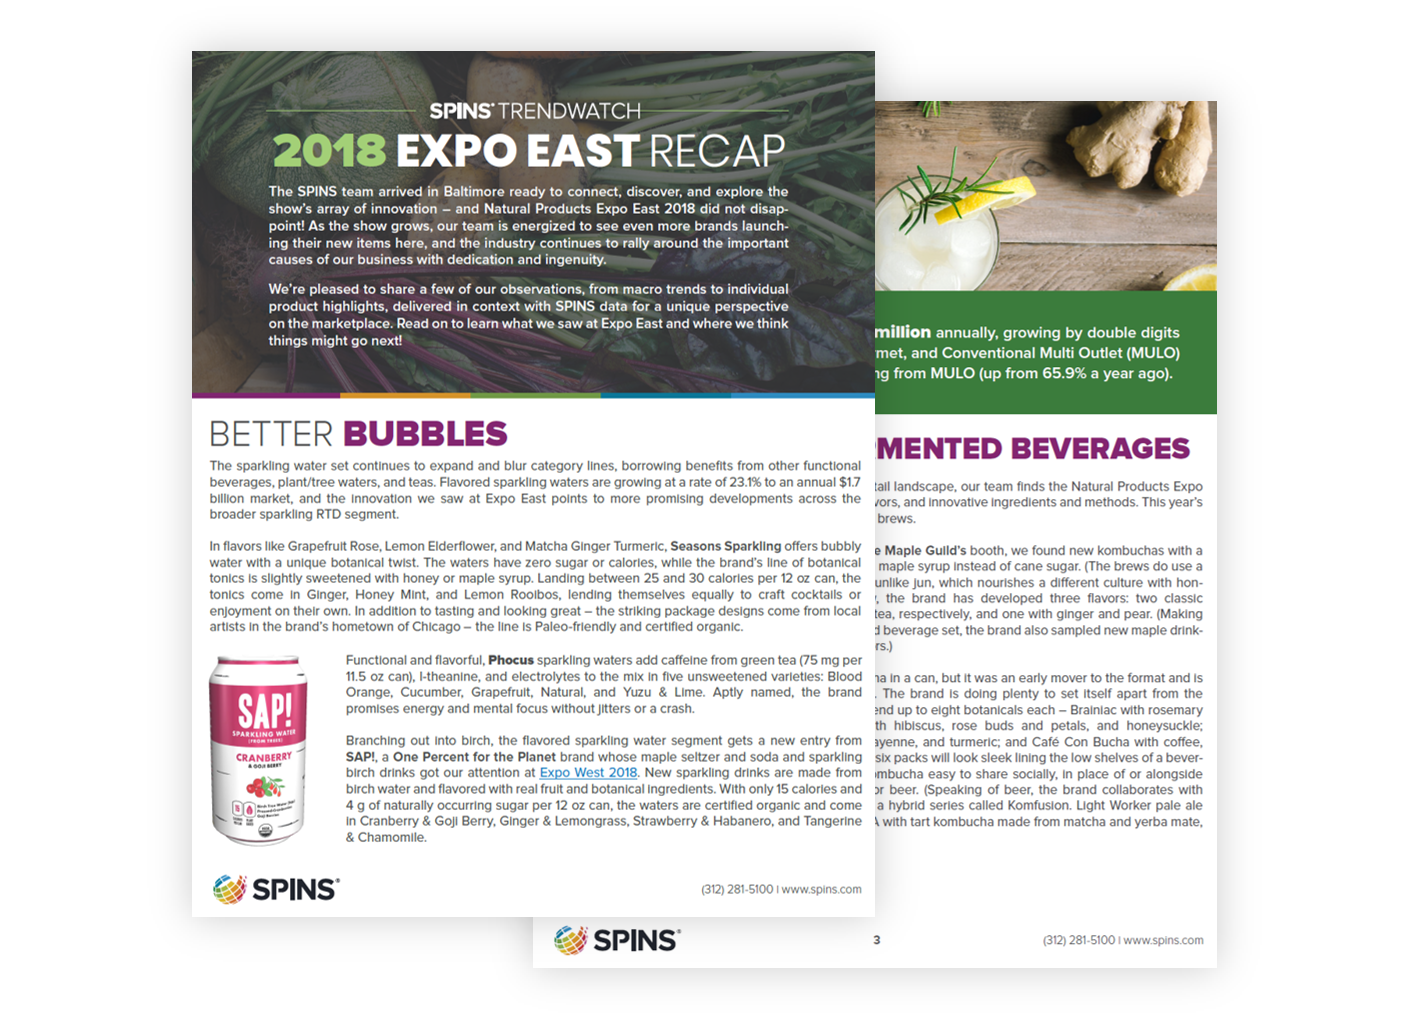 SPINS's experts recap Expo East 2018